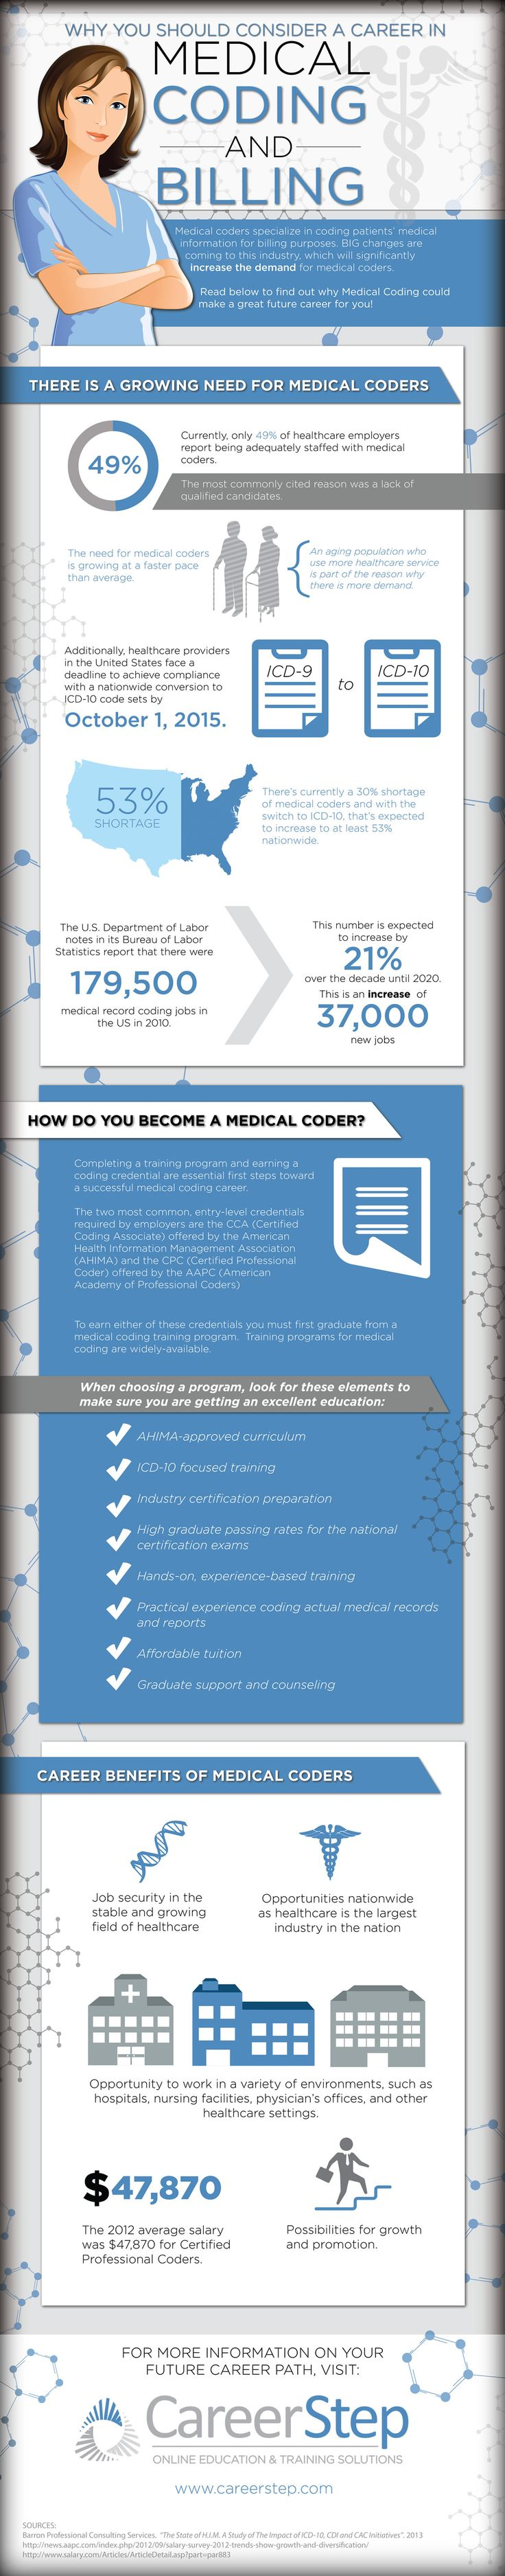 Medical billing and coding jobs are in demand. Get trained and even find a position that allows you to work at home!